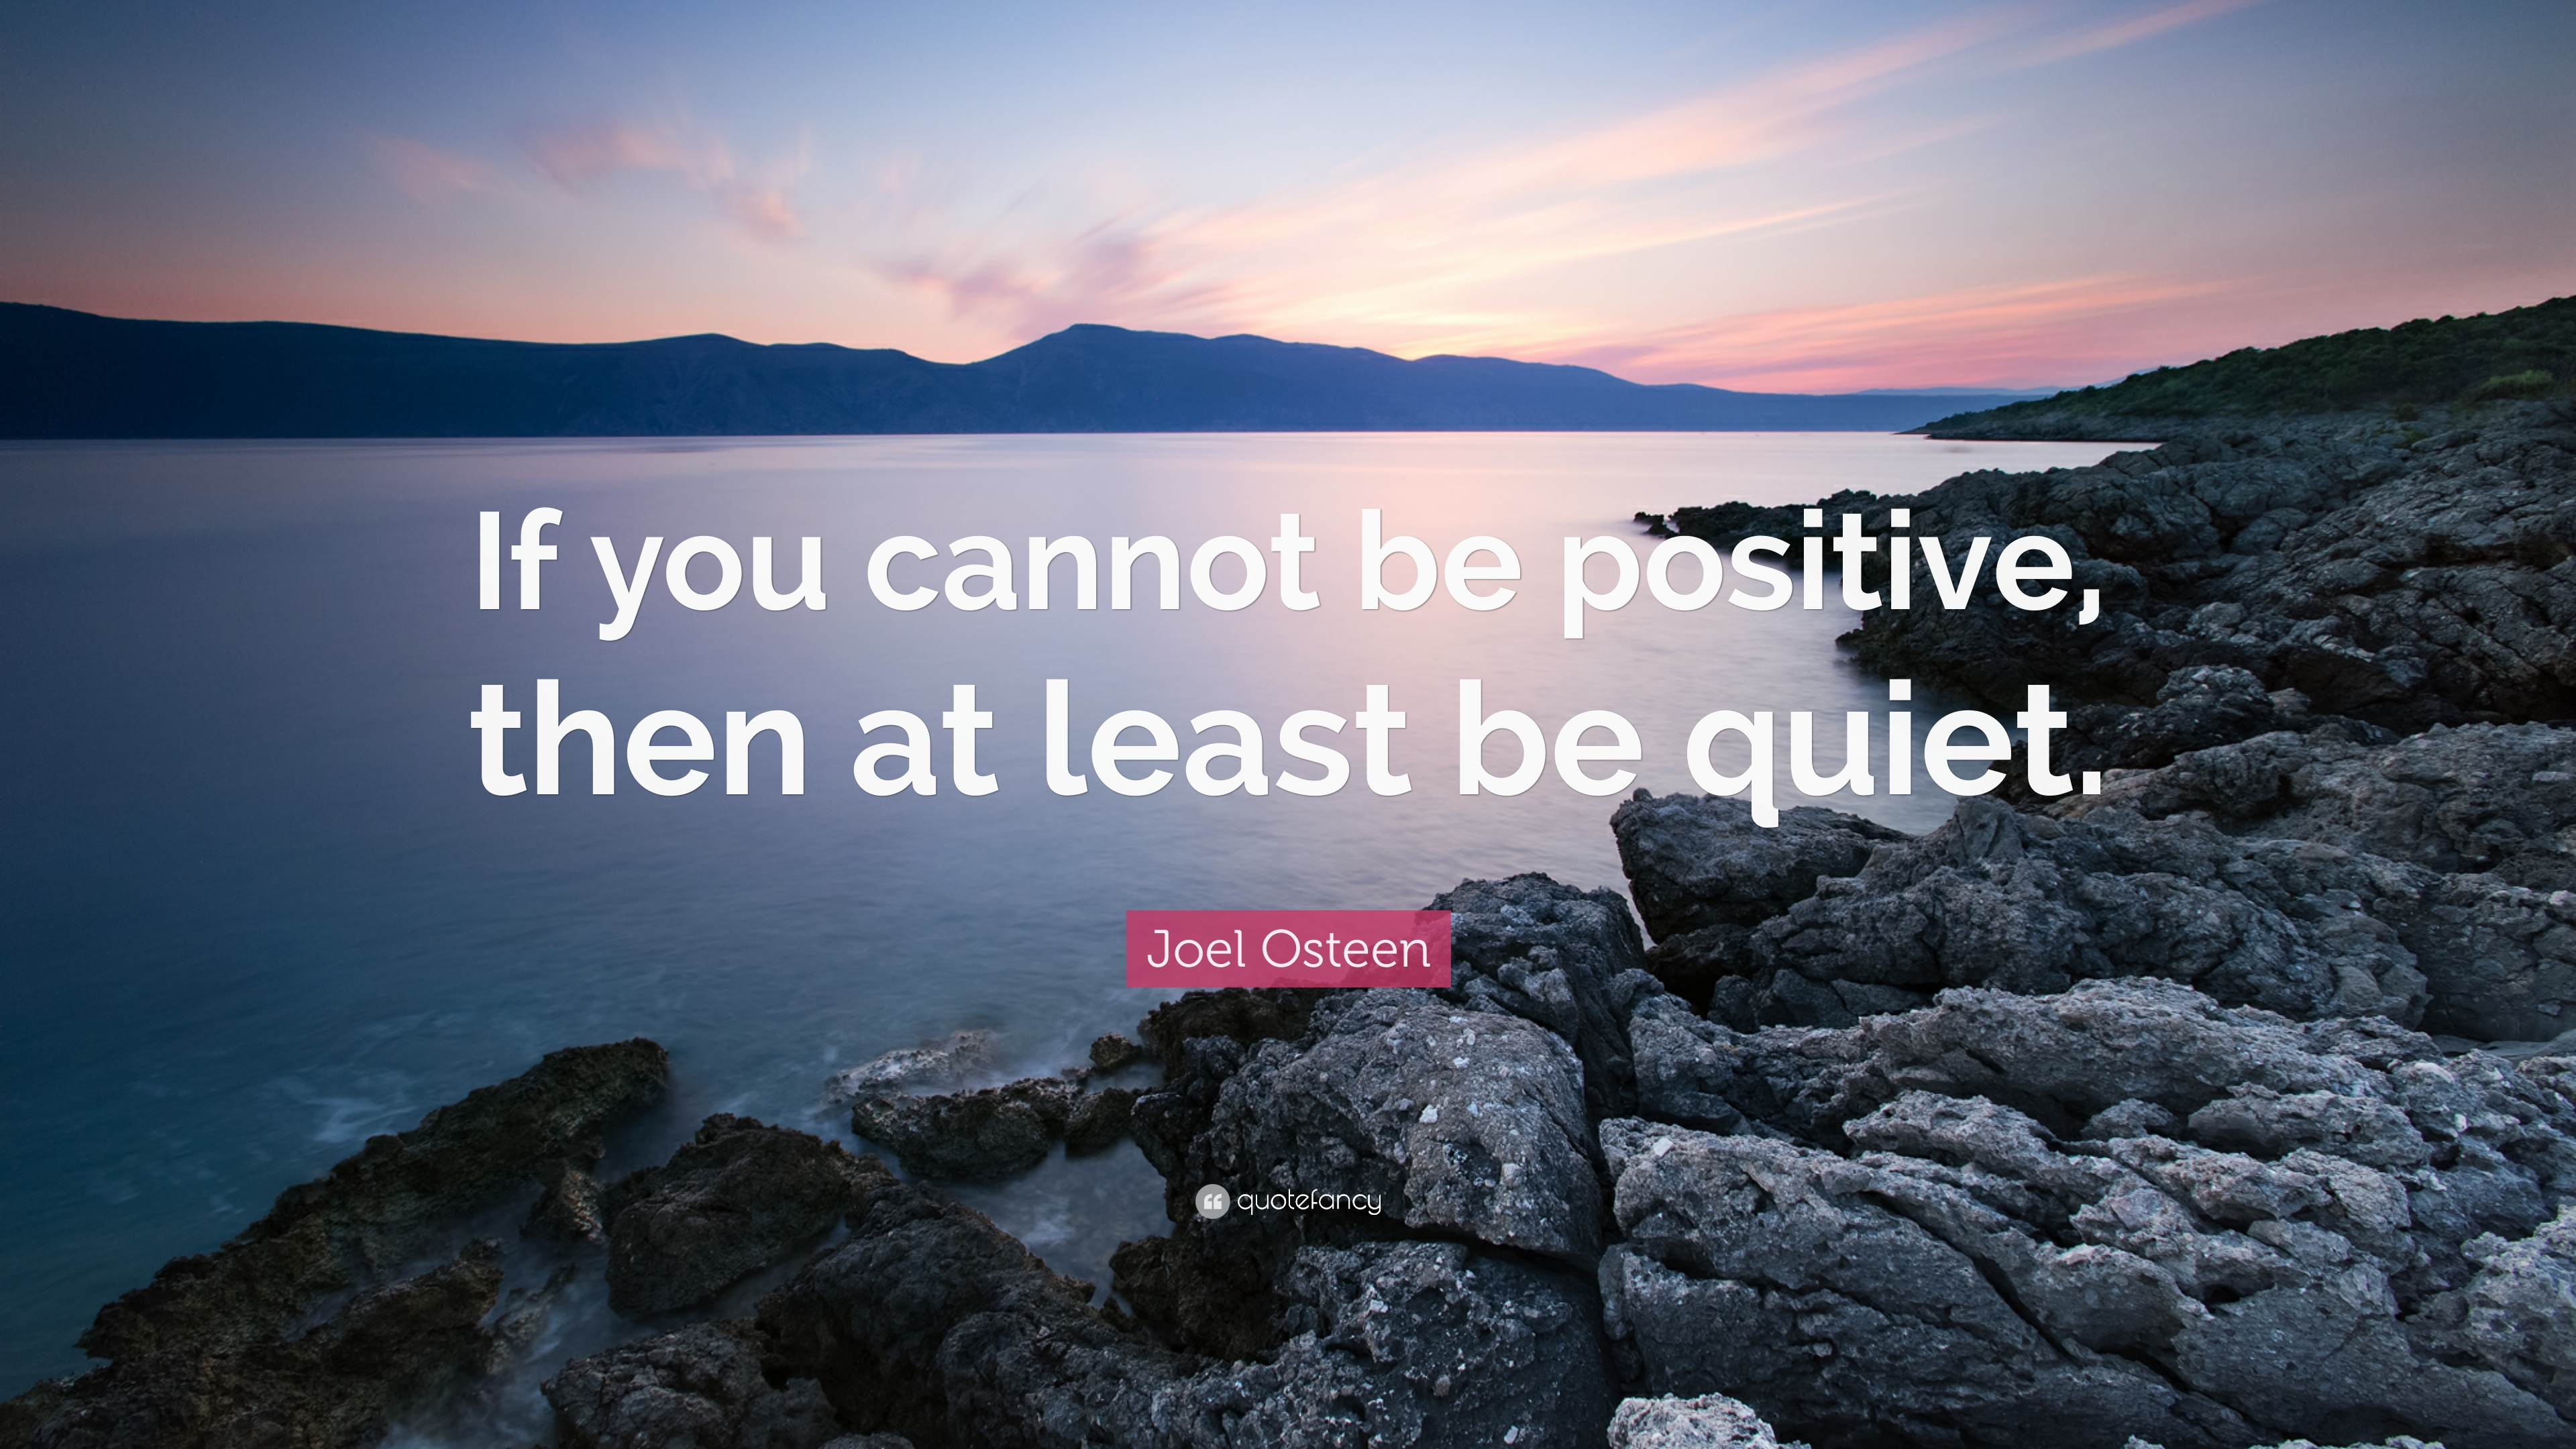 Ordinaire Joel Osteen Quote: U201cIf You Cannot Be Positive, Then At Least Be Quiet